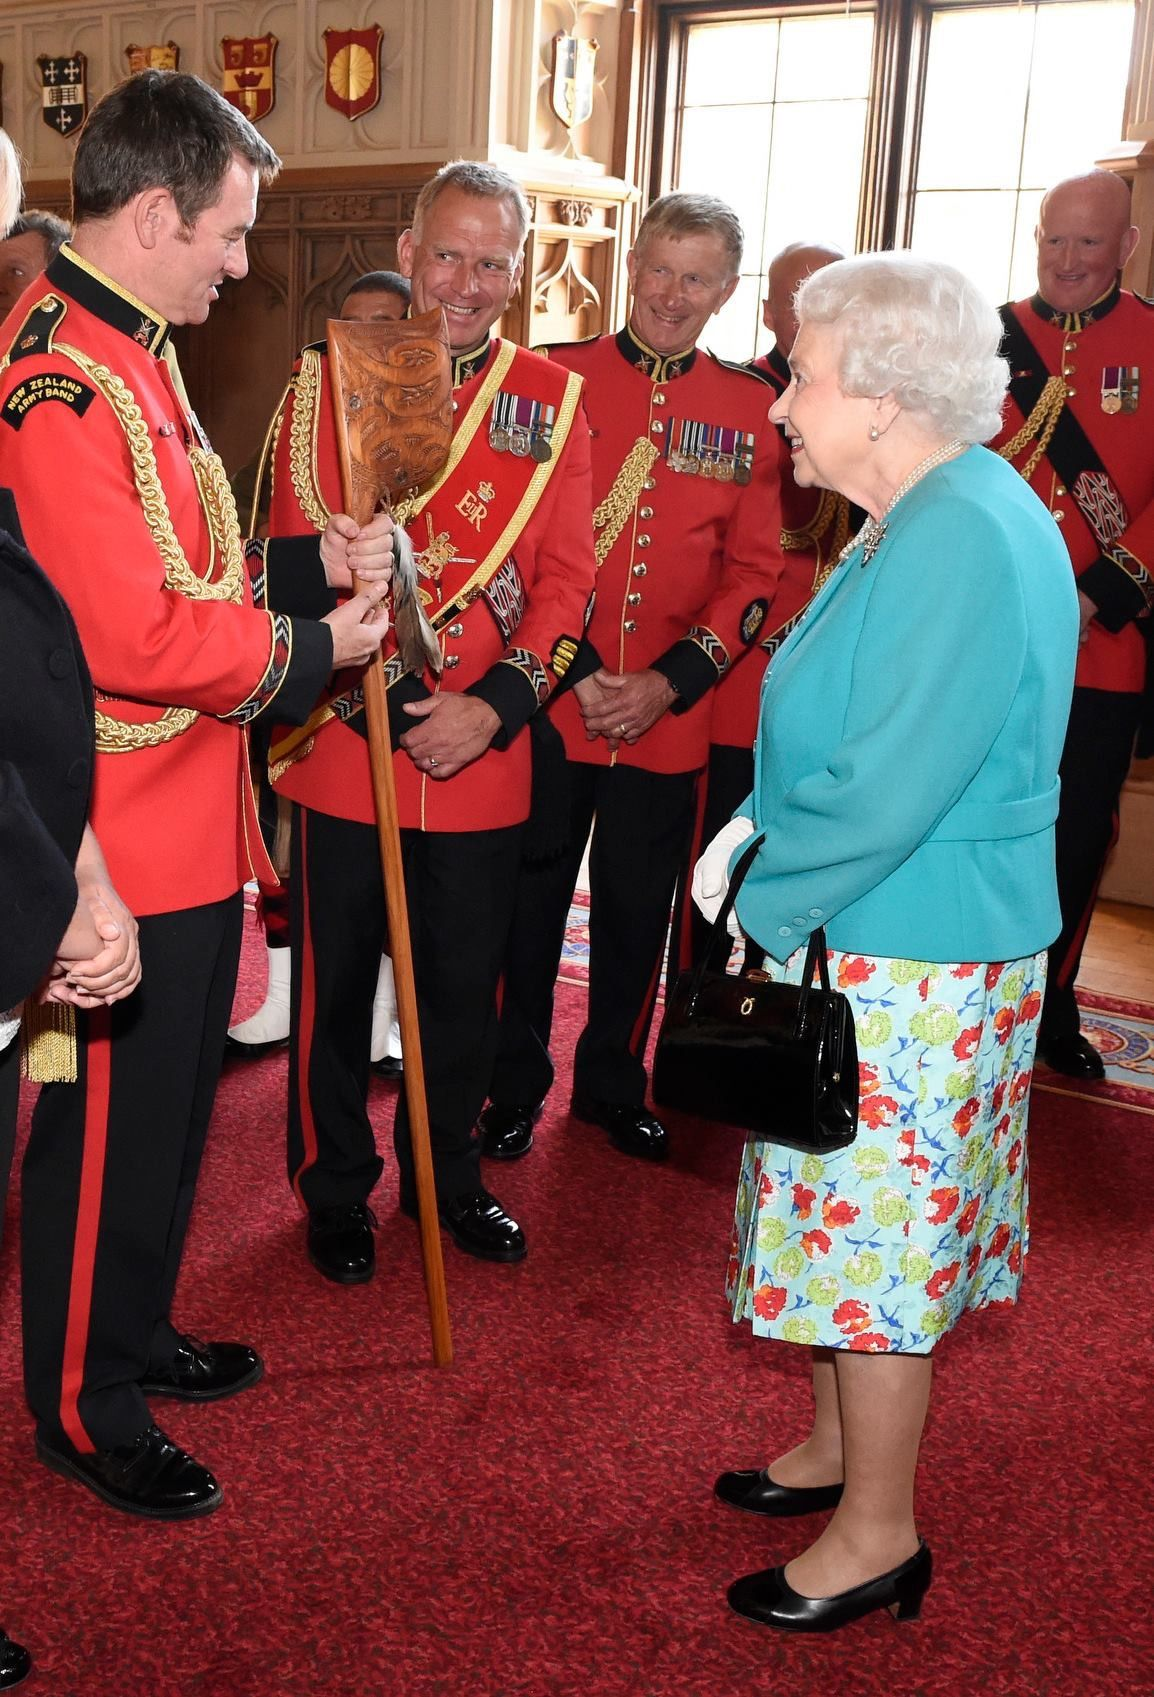 The NZ Army Band had the great honour of presenting Her